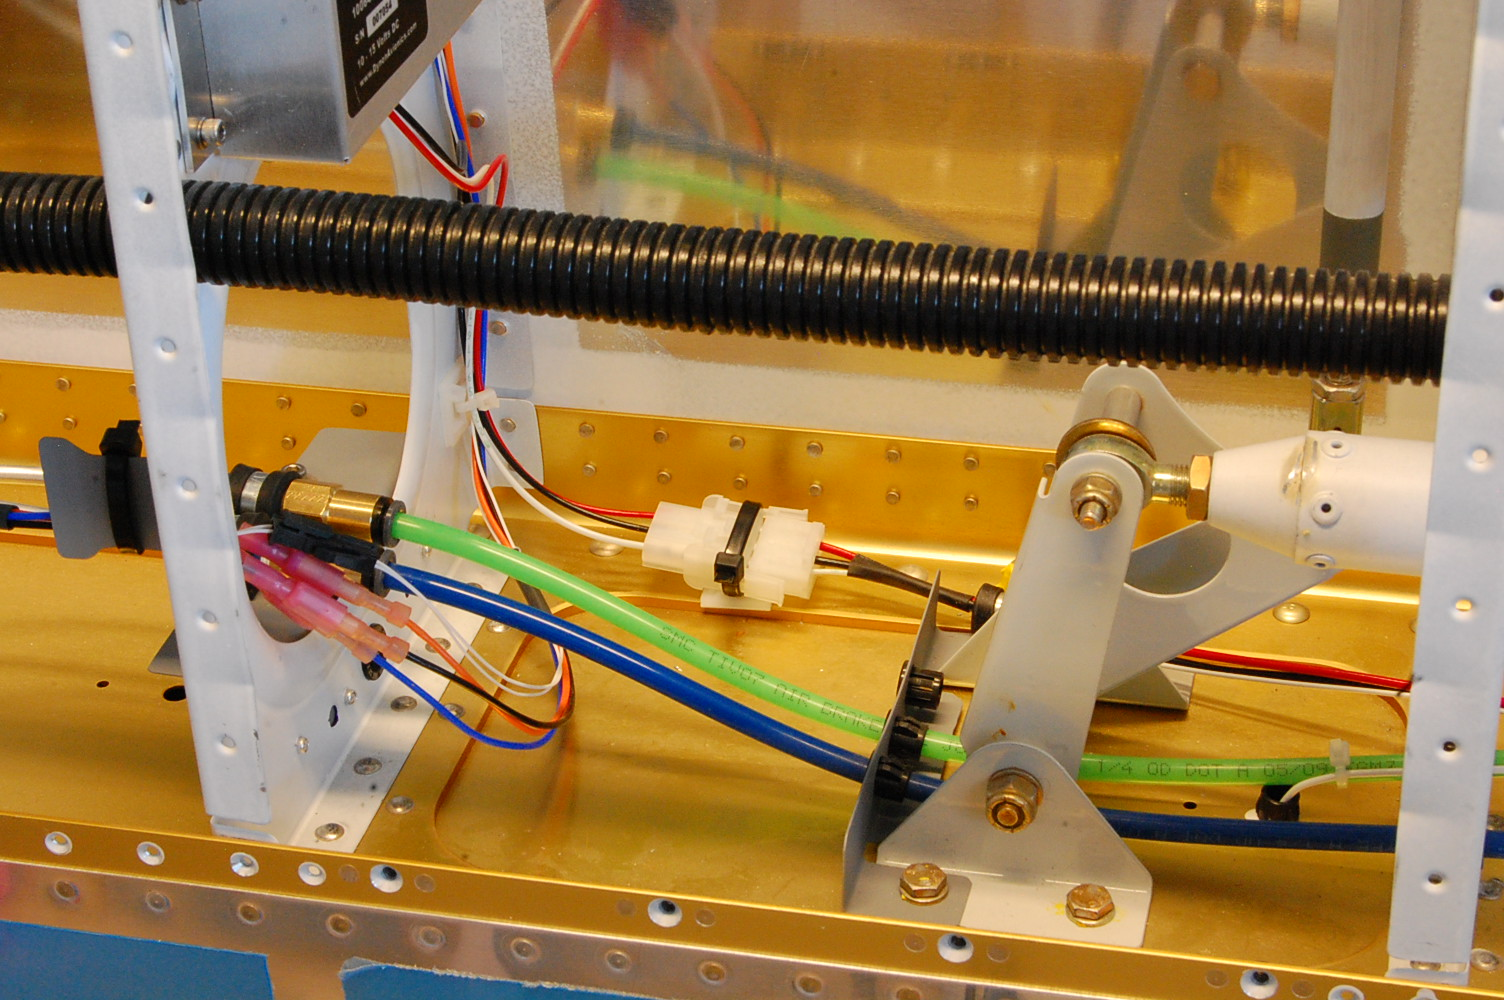 hight resolution of here is a view from the top so you can see the wiring routing better